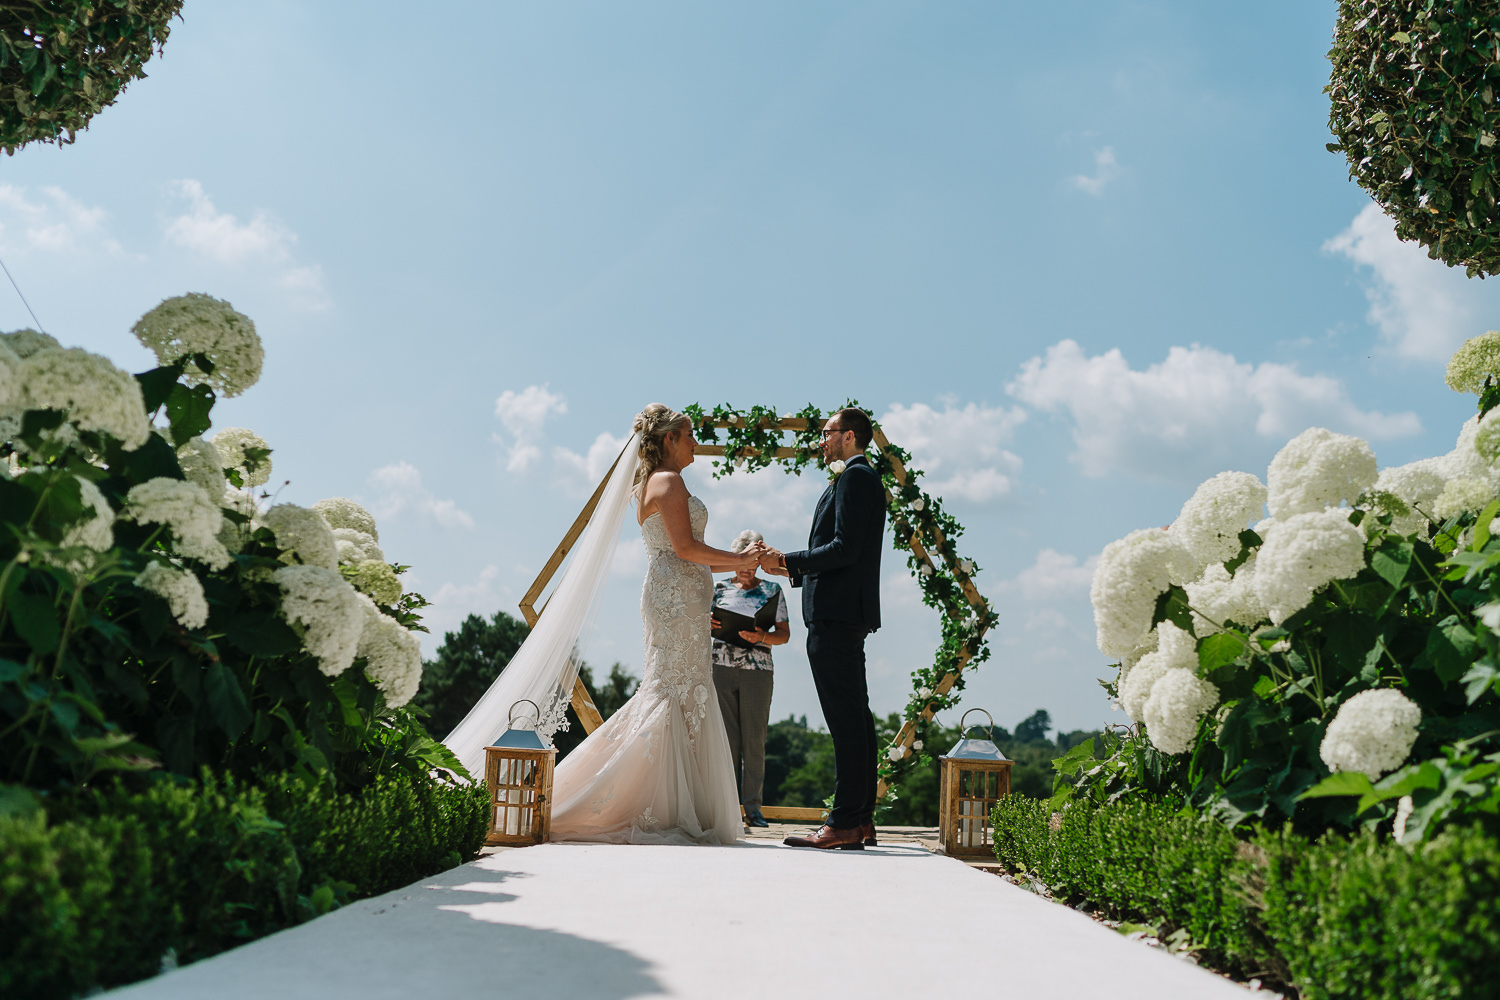 A photo of the bride and groom during the service